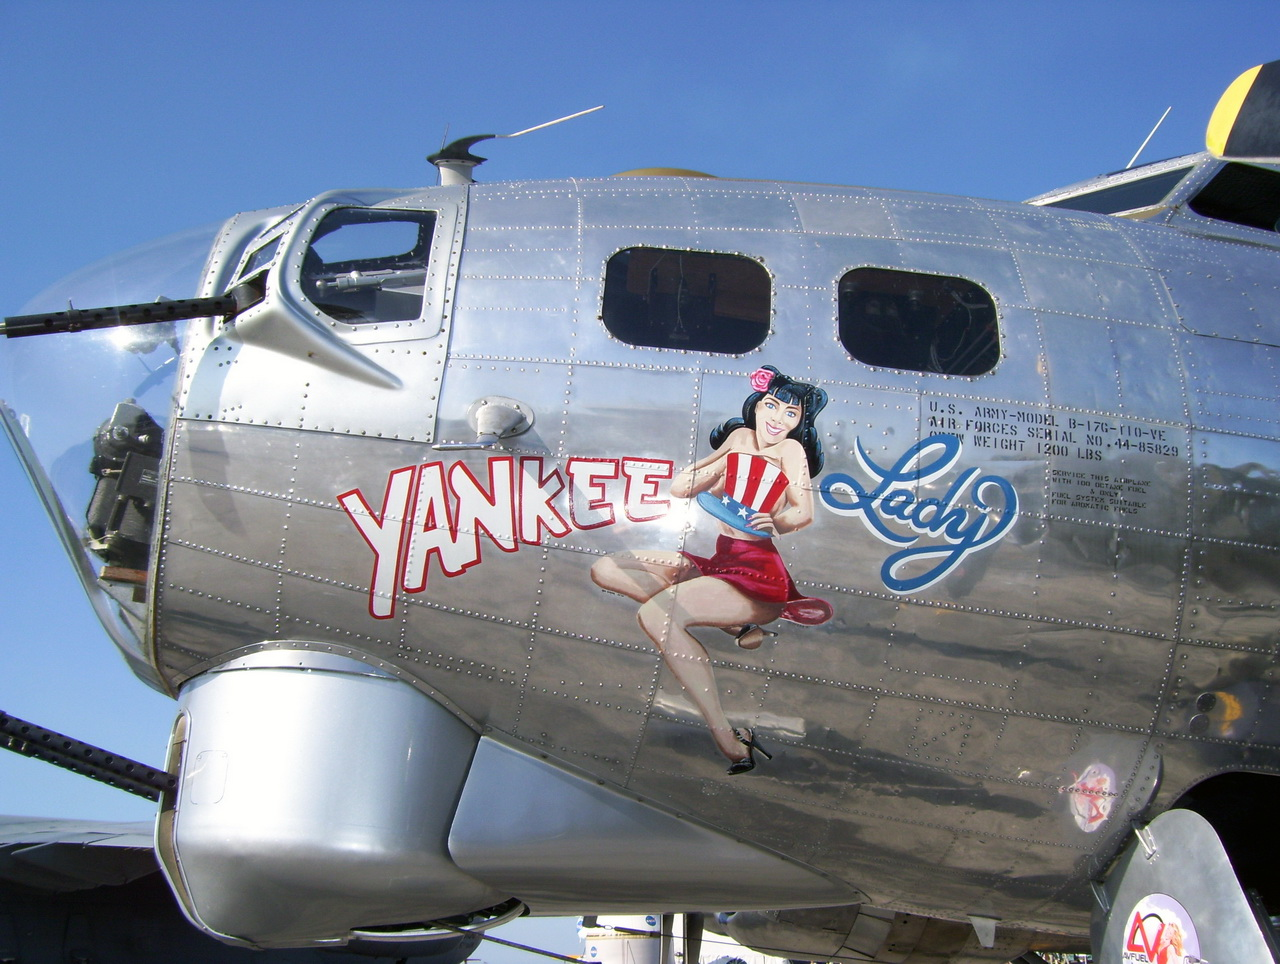 B-17 Bomber YANKEE LADY aircraft noseart